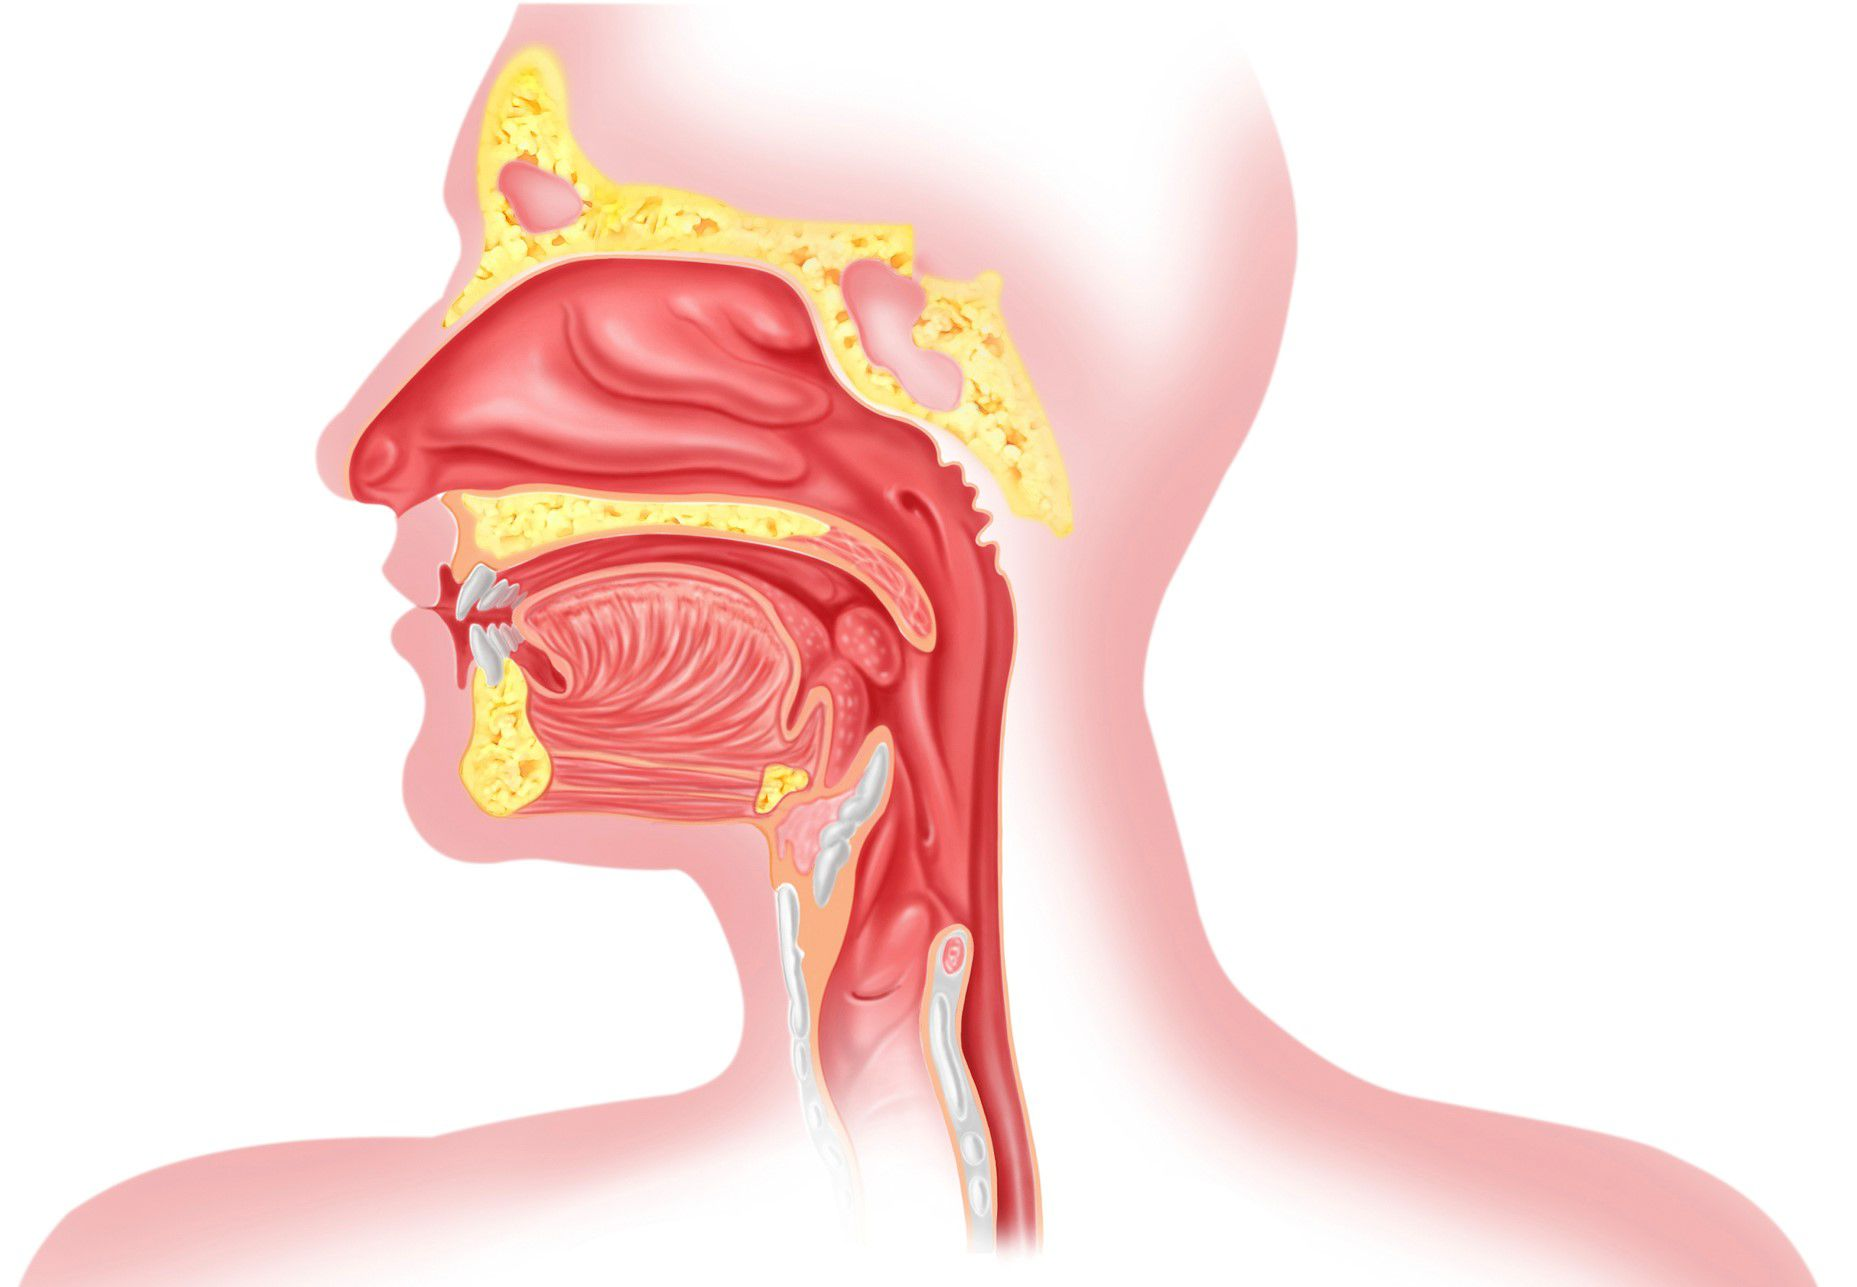 The Upper Esophageal Sphincter and Acid Reflux